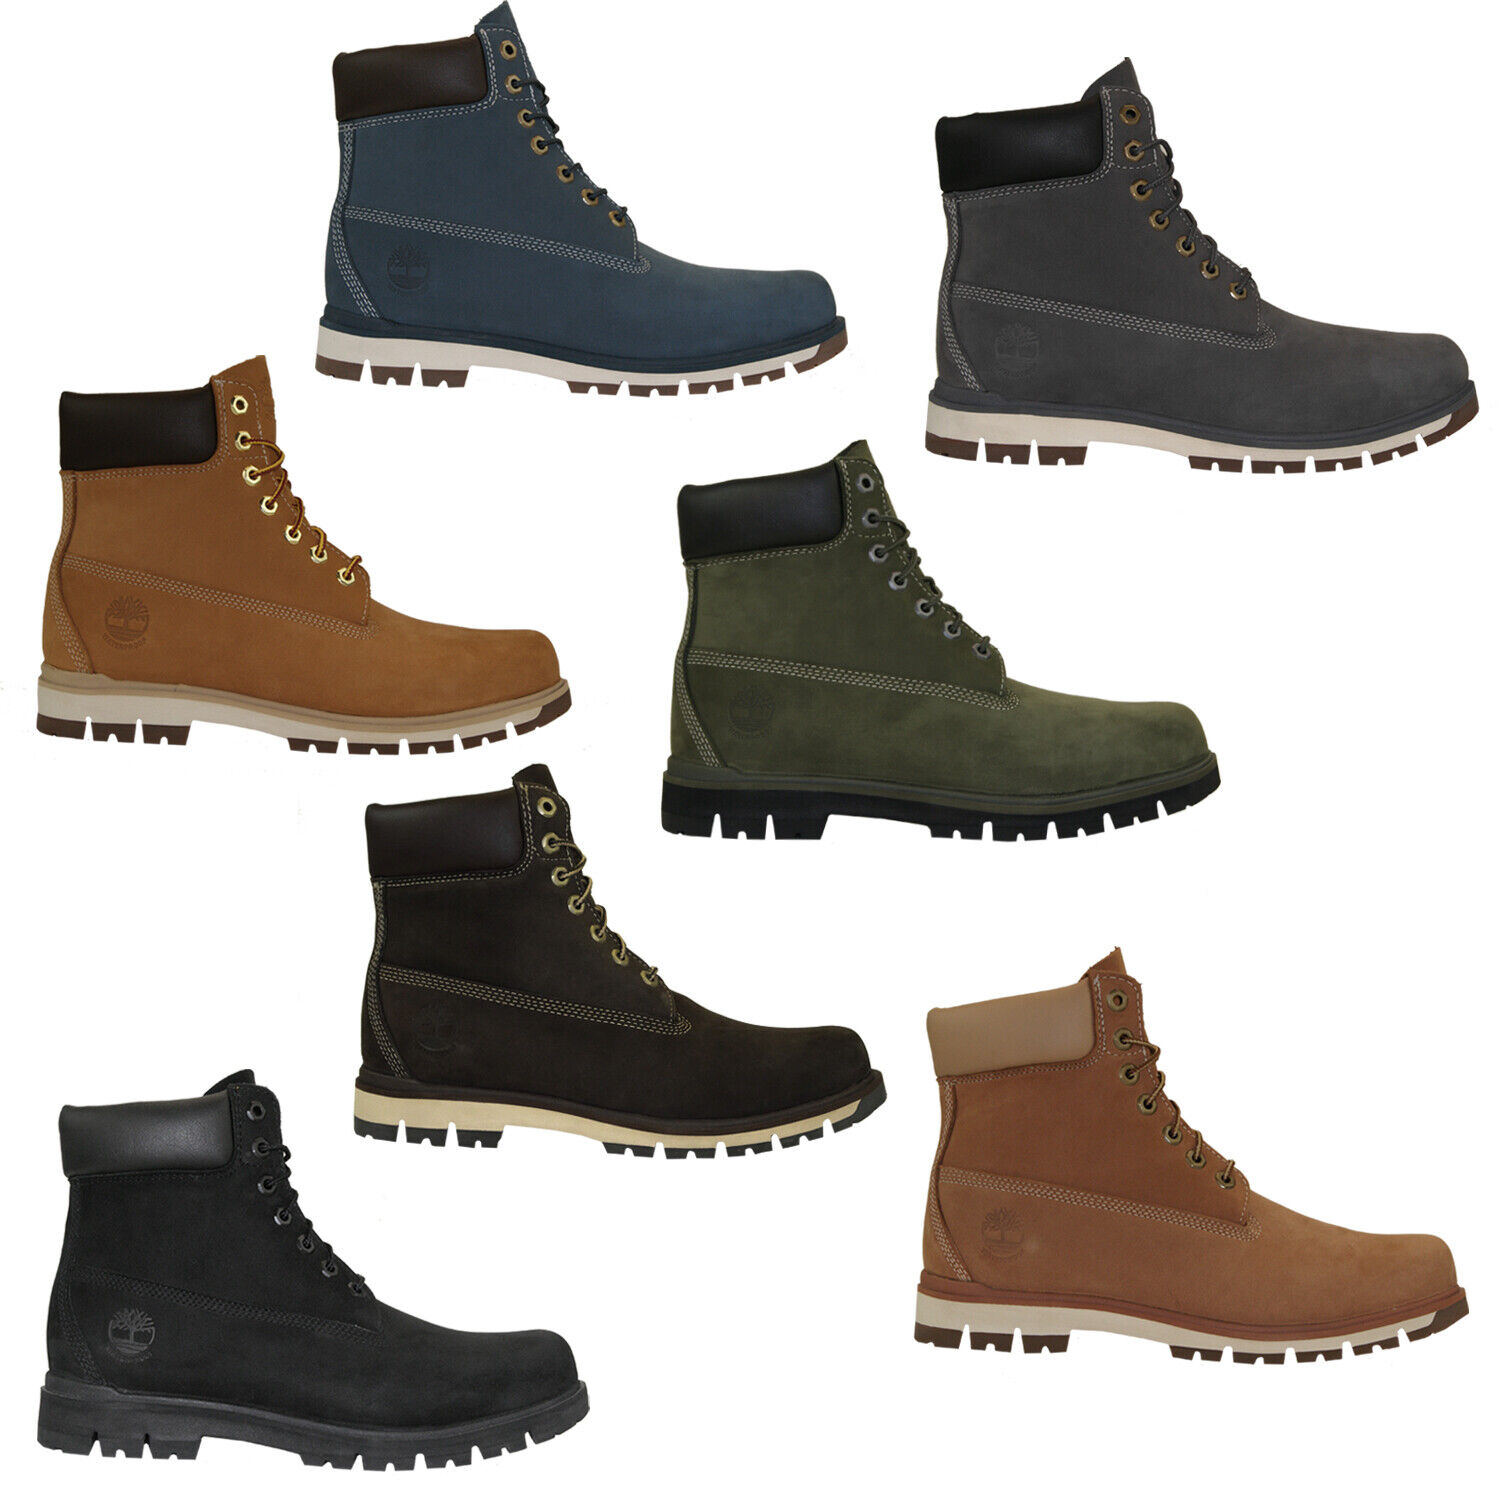 Precursor desinfectante Eficiente  Timberland 6 Inch Boots Radford Waterproof Men Boots Shoes Sensorflex for  sale online